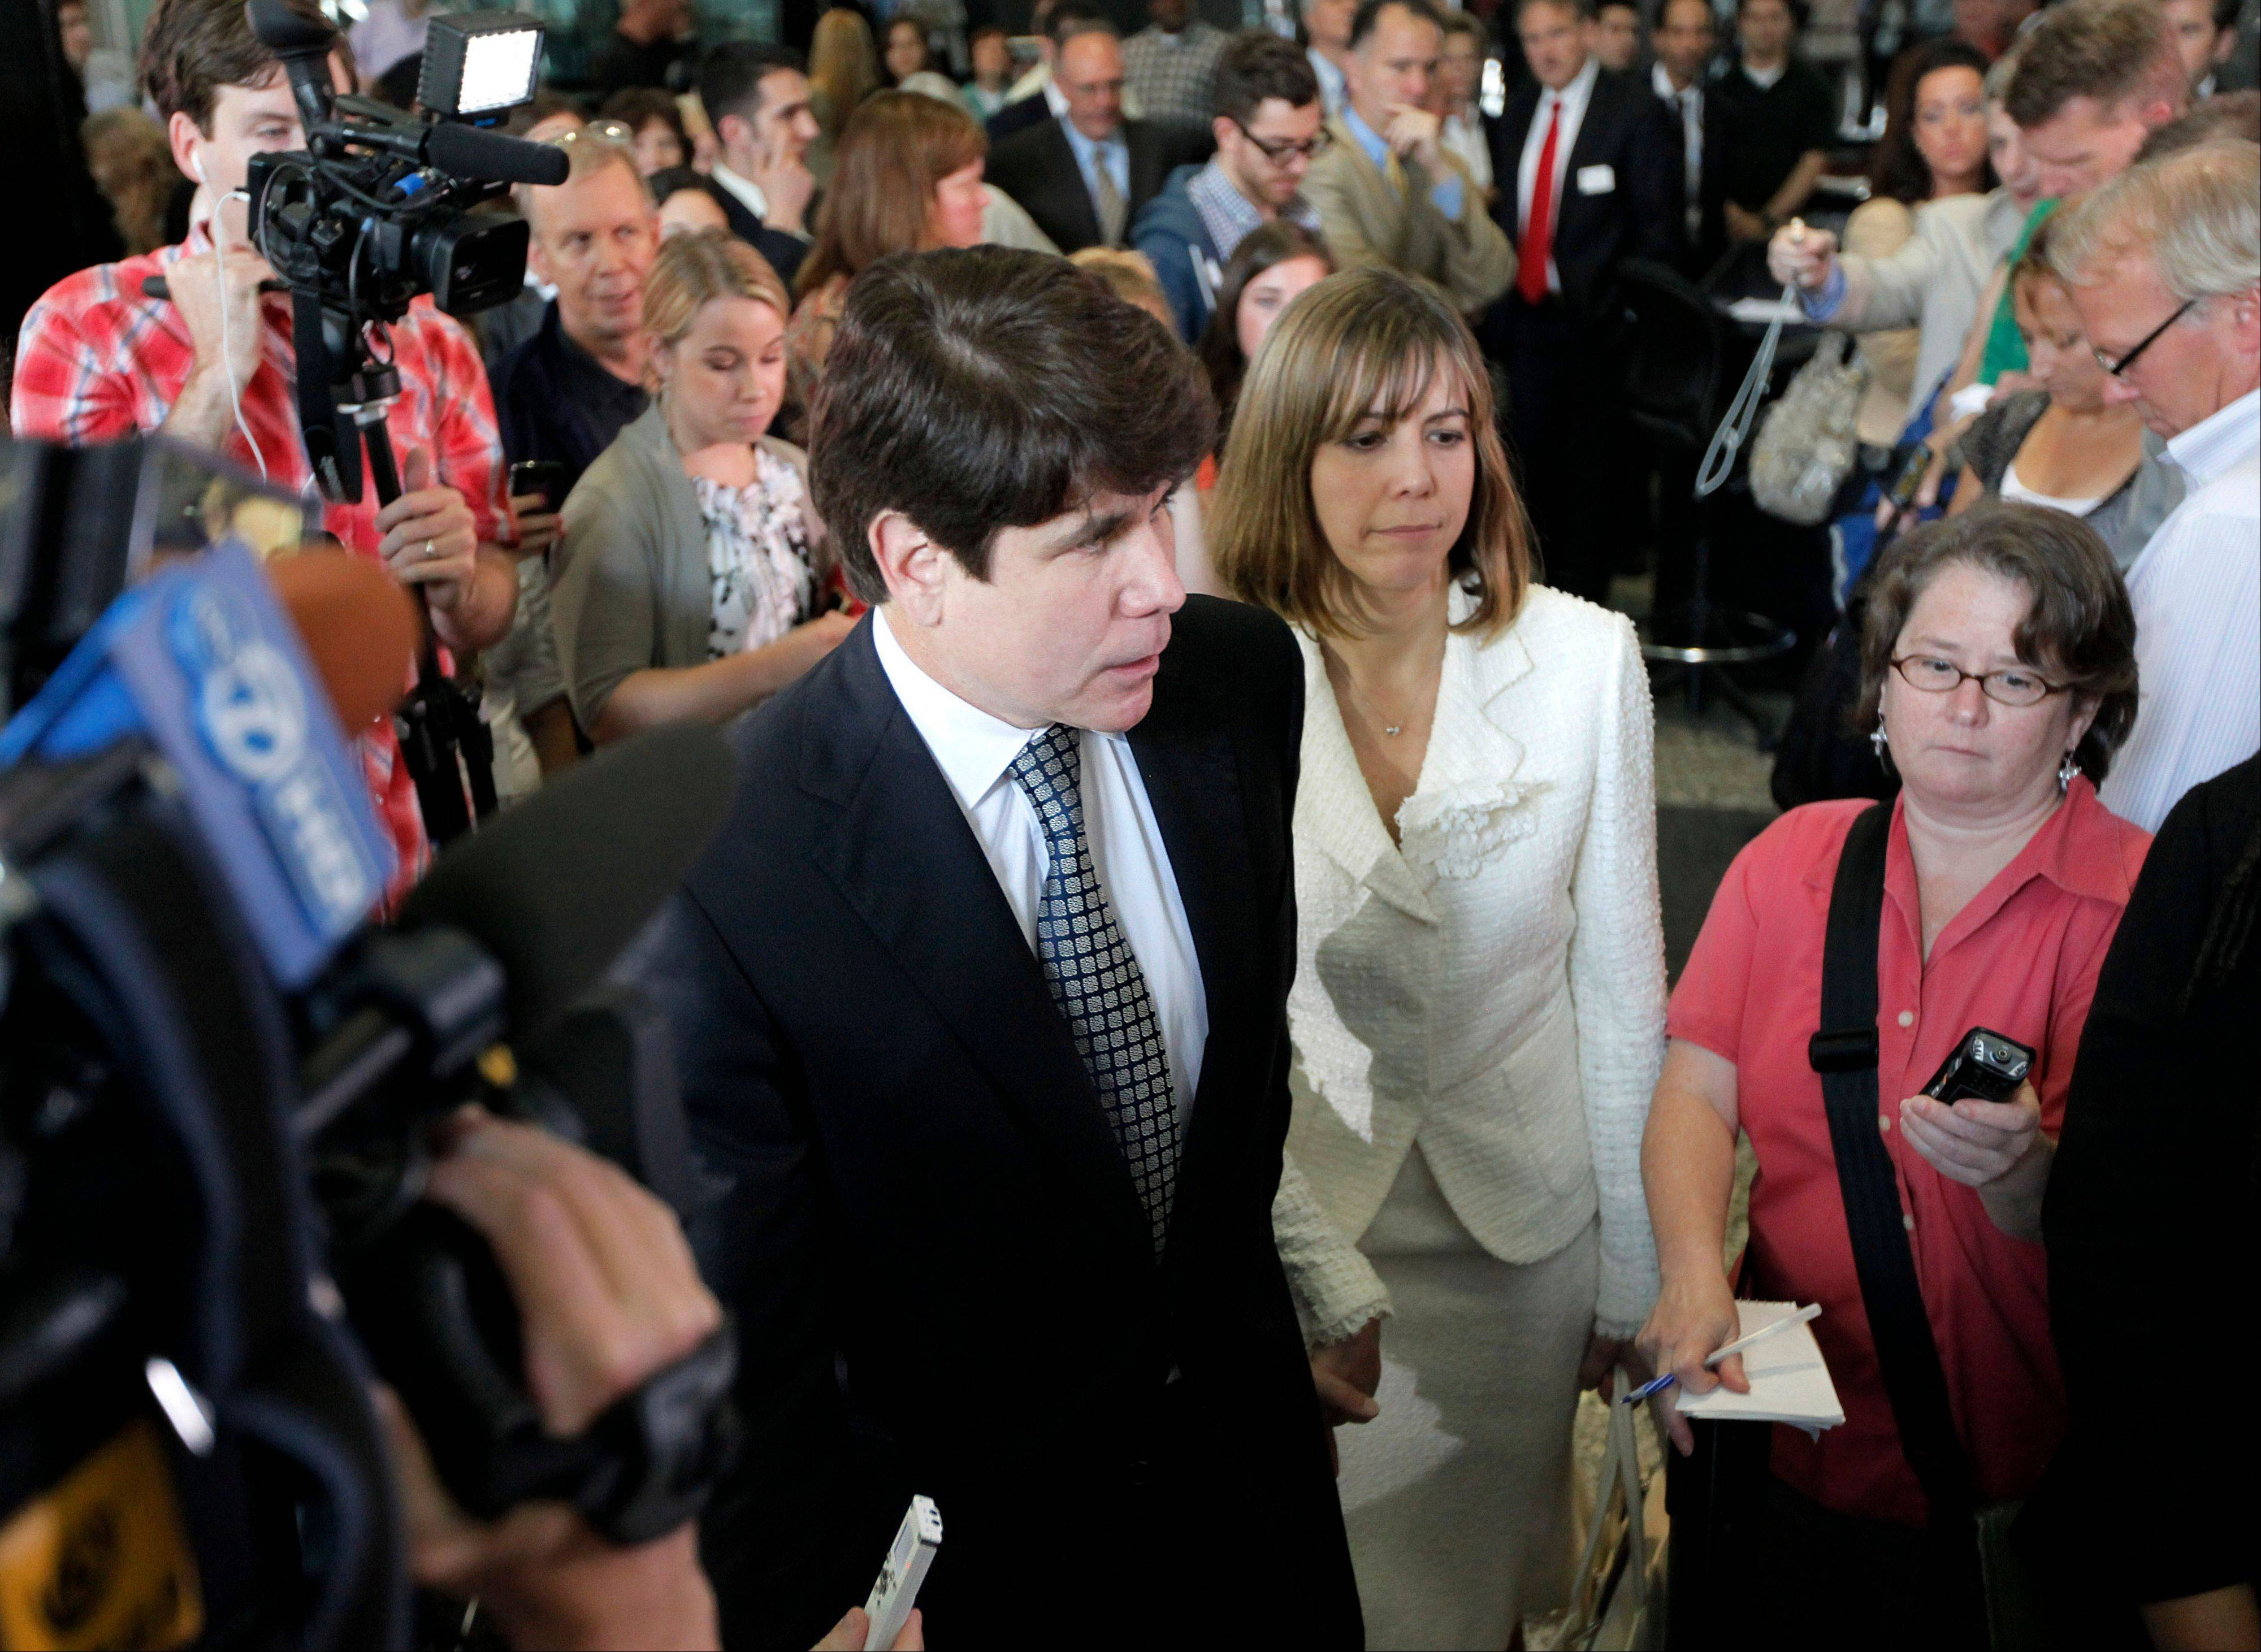 Former Illinois Gov. Rod Blagojevich comes to speak to the media with his wife Patti at the Federal Courthouse Monday, June 27, 2011 in Chicago. Blagojevich has been convicted of 17 of the 20 charges against him.